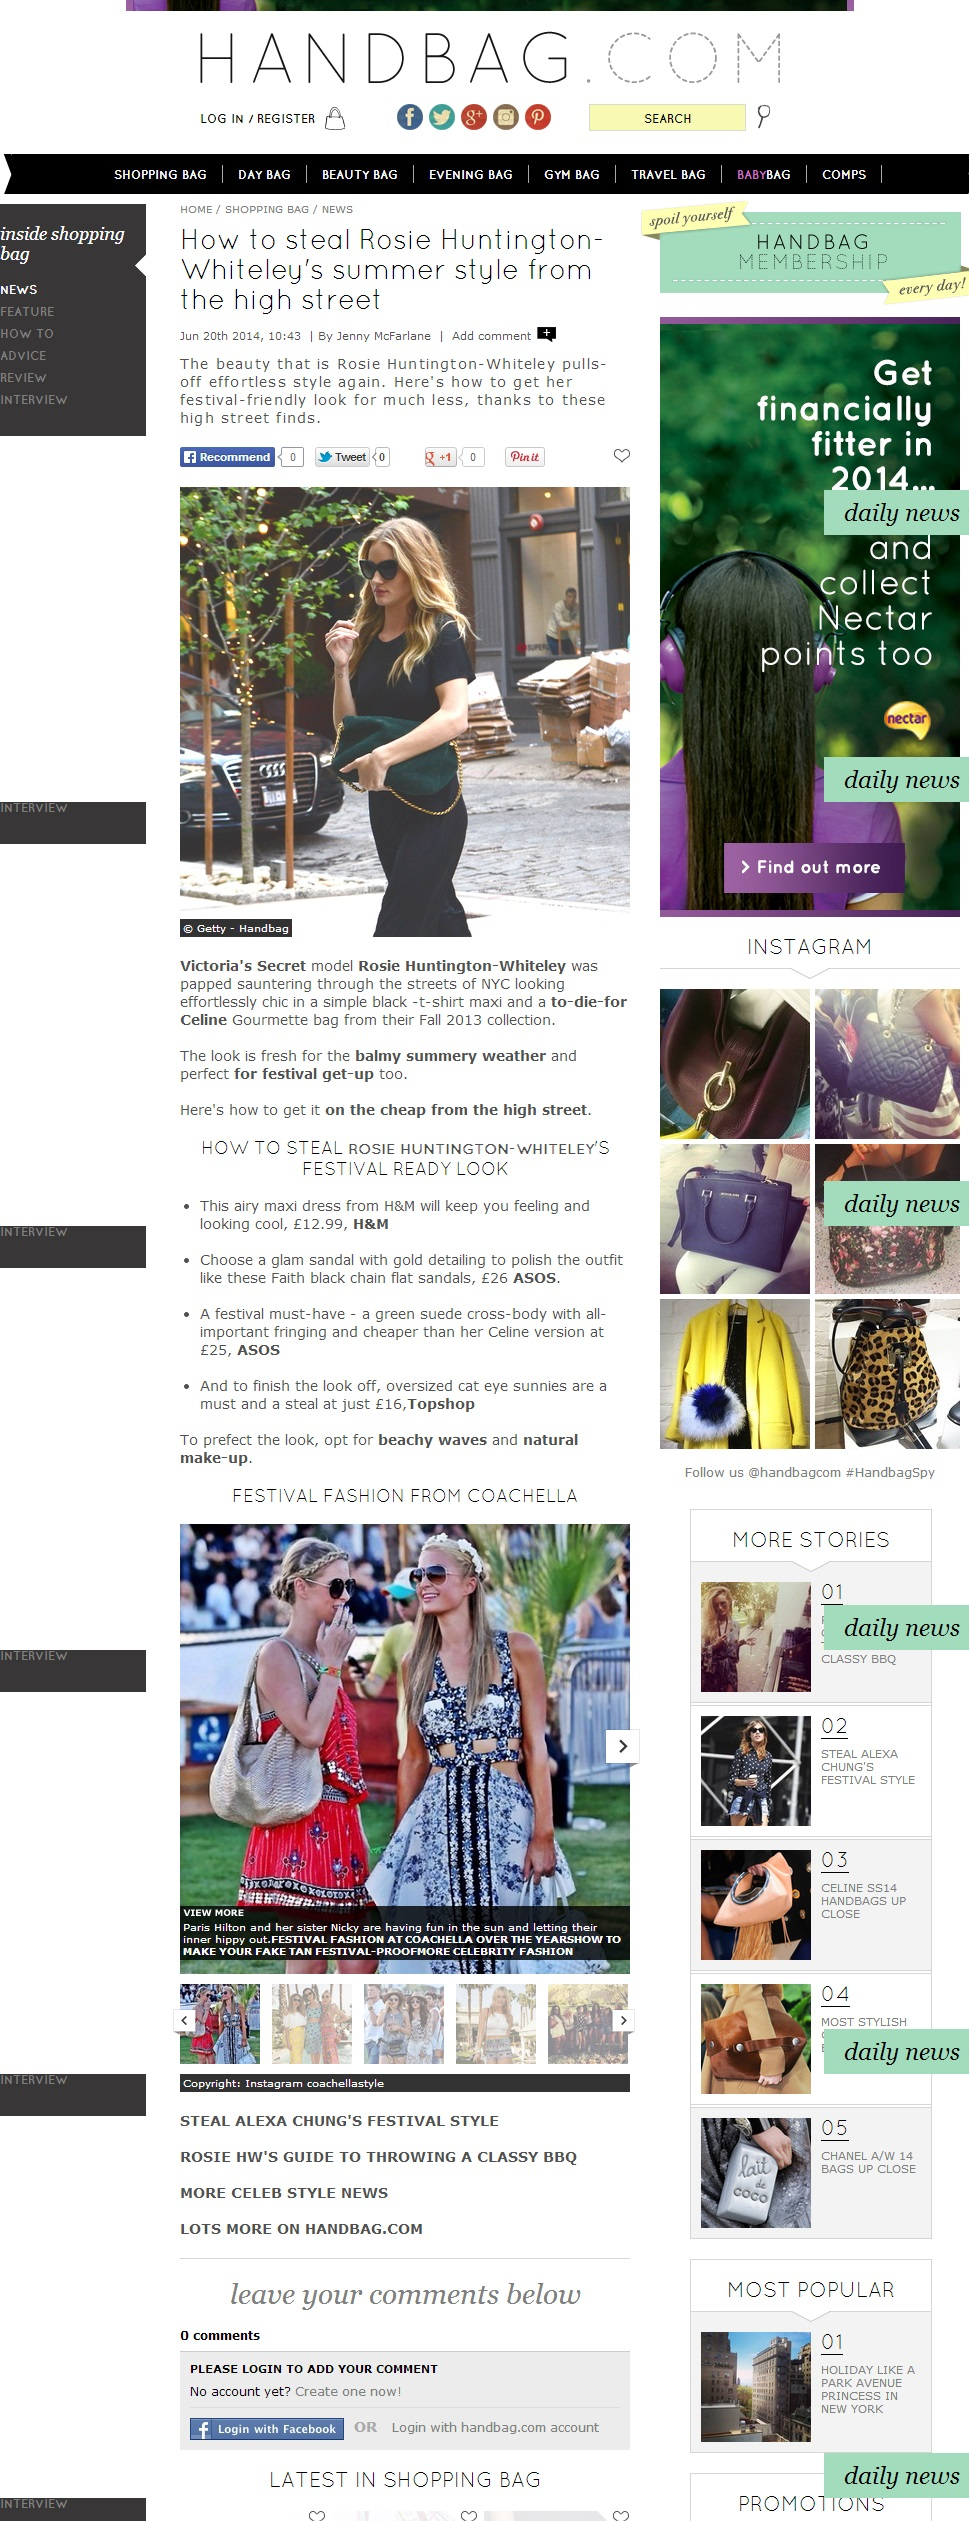 screencapture-www-handbag-com-shopping-bag-news-a579152-how-to-steal-rosie-huntington-whiteleys-summer-style-from-the-high-street-html